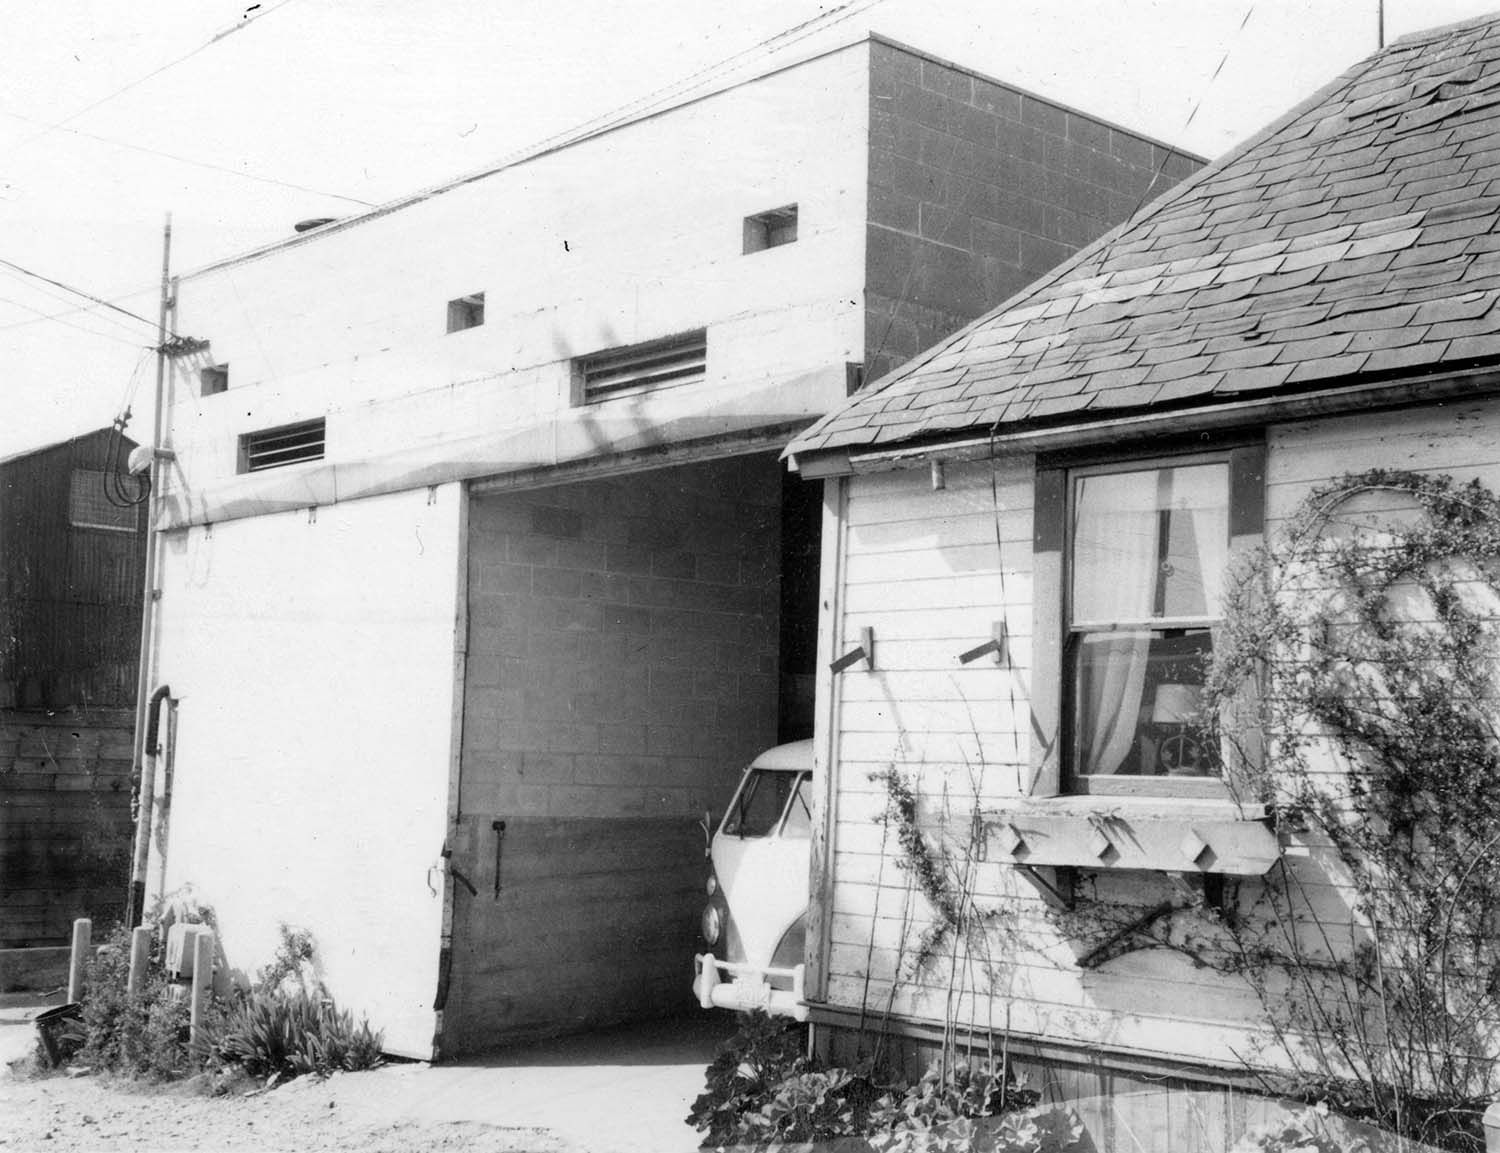 274 [- 278] Union Street, back, 1973. Photograph shows Union Laundry and portion of a house (back of 278 Union Street). Reference code COV-S168-: CVA 203-66